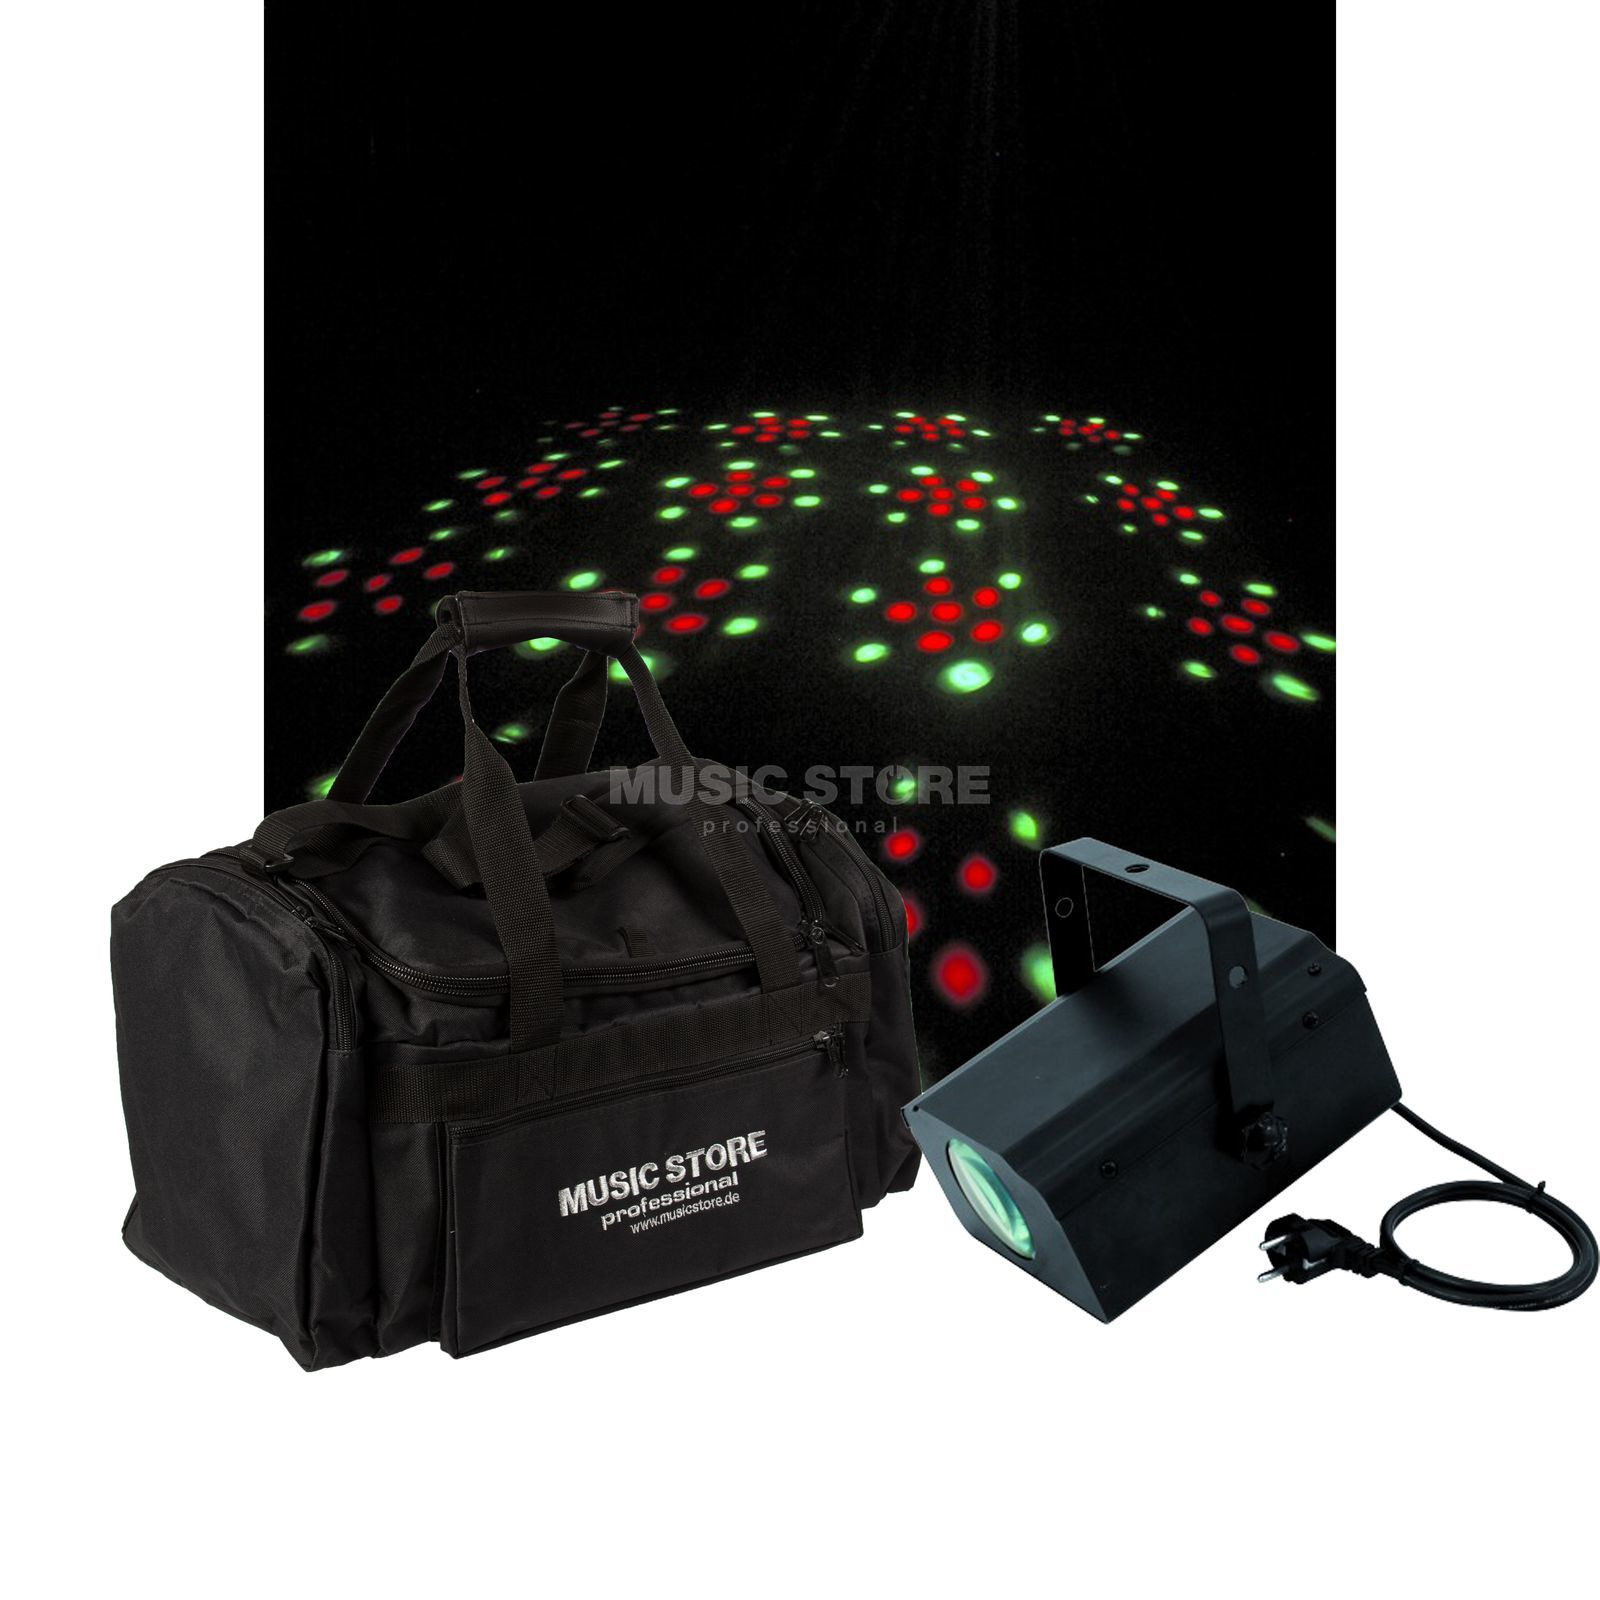 Eurolite LED FE-19 + Bag - Set Product Image